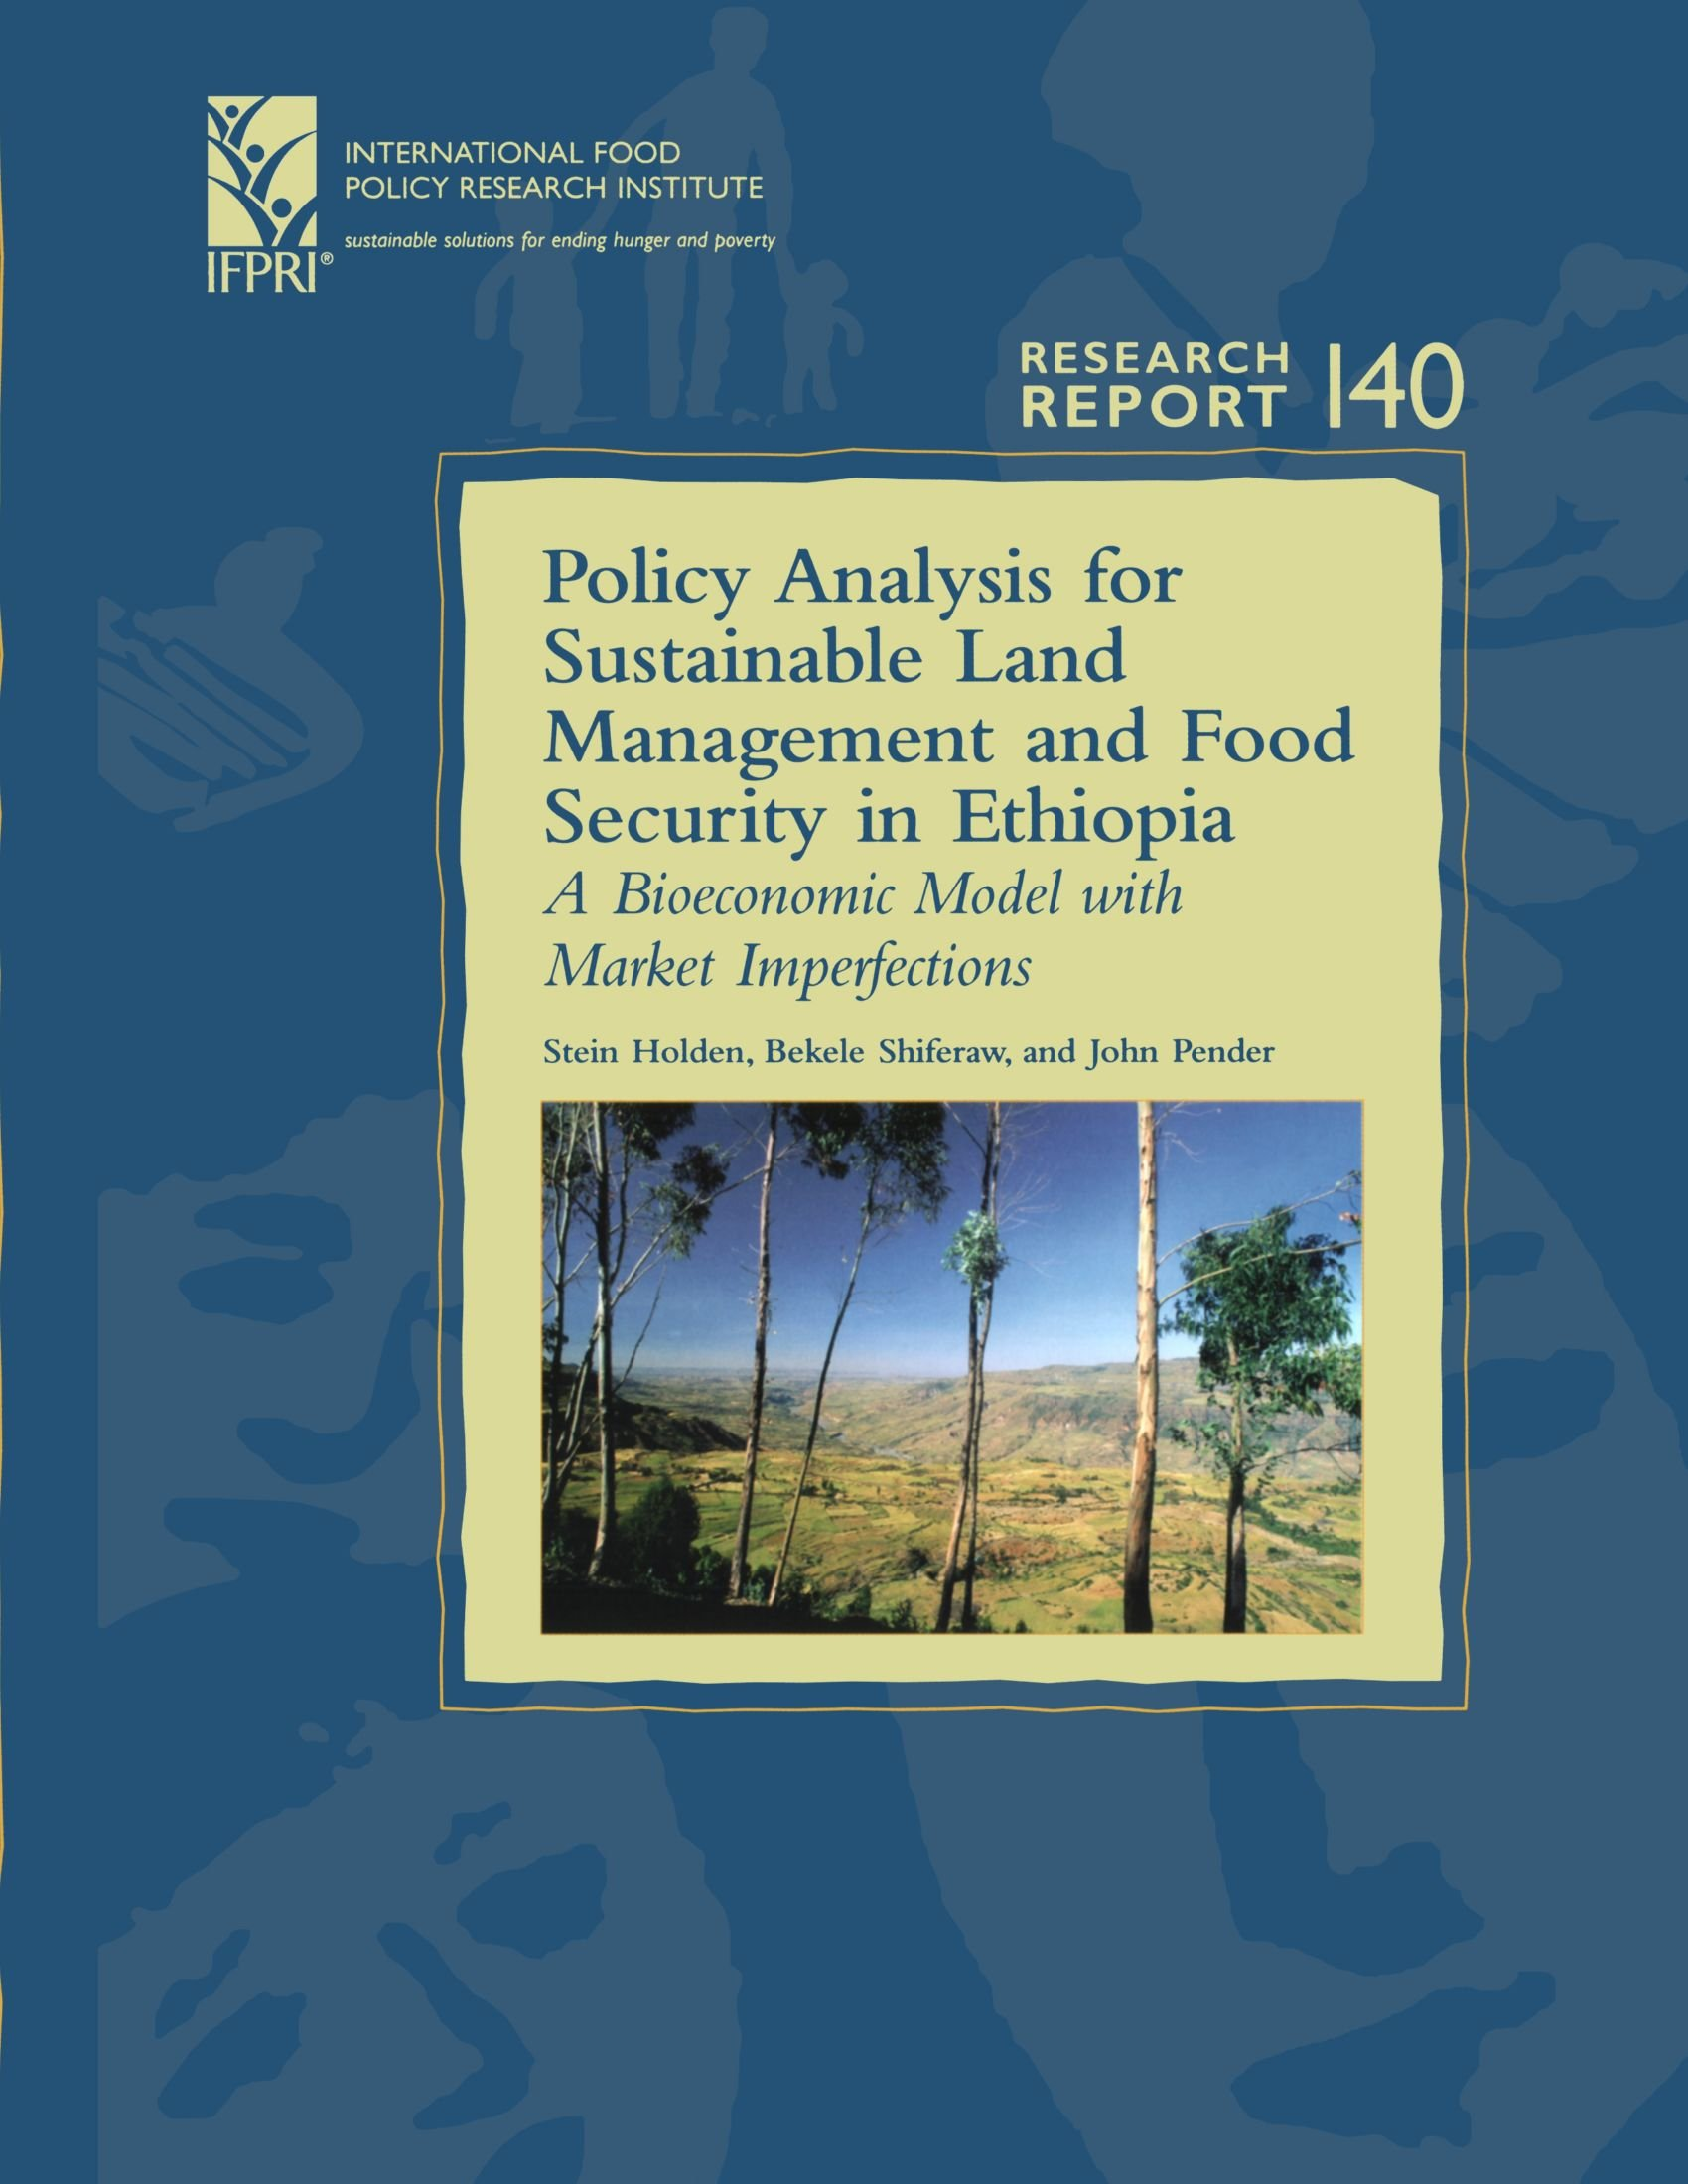 Policy Analysis for Sustainable Land Management and Food Security in Ethiopia: A Bioeconomic Model with Market Imperfections (Research Report 140 - ... Food Policy Research Institute), 140.) ebook